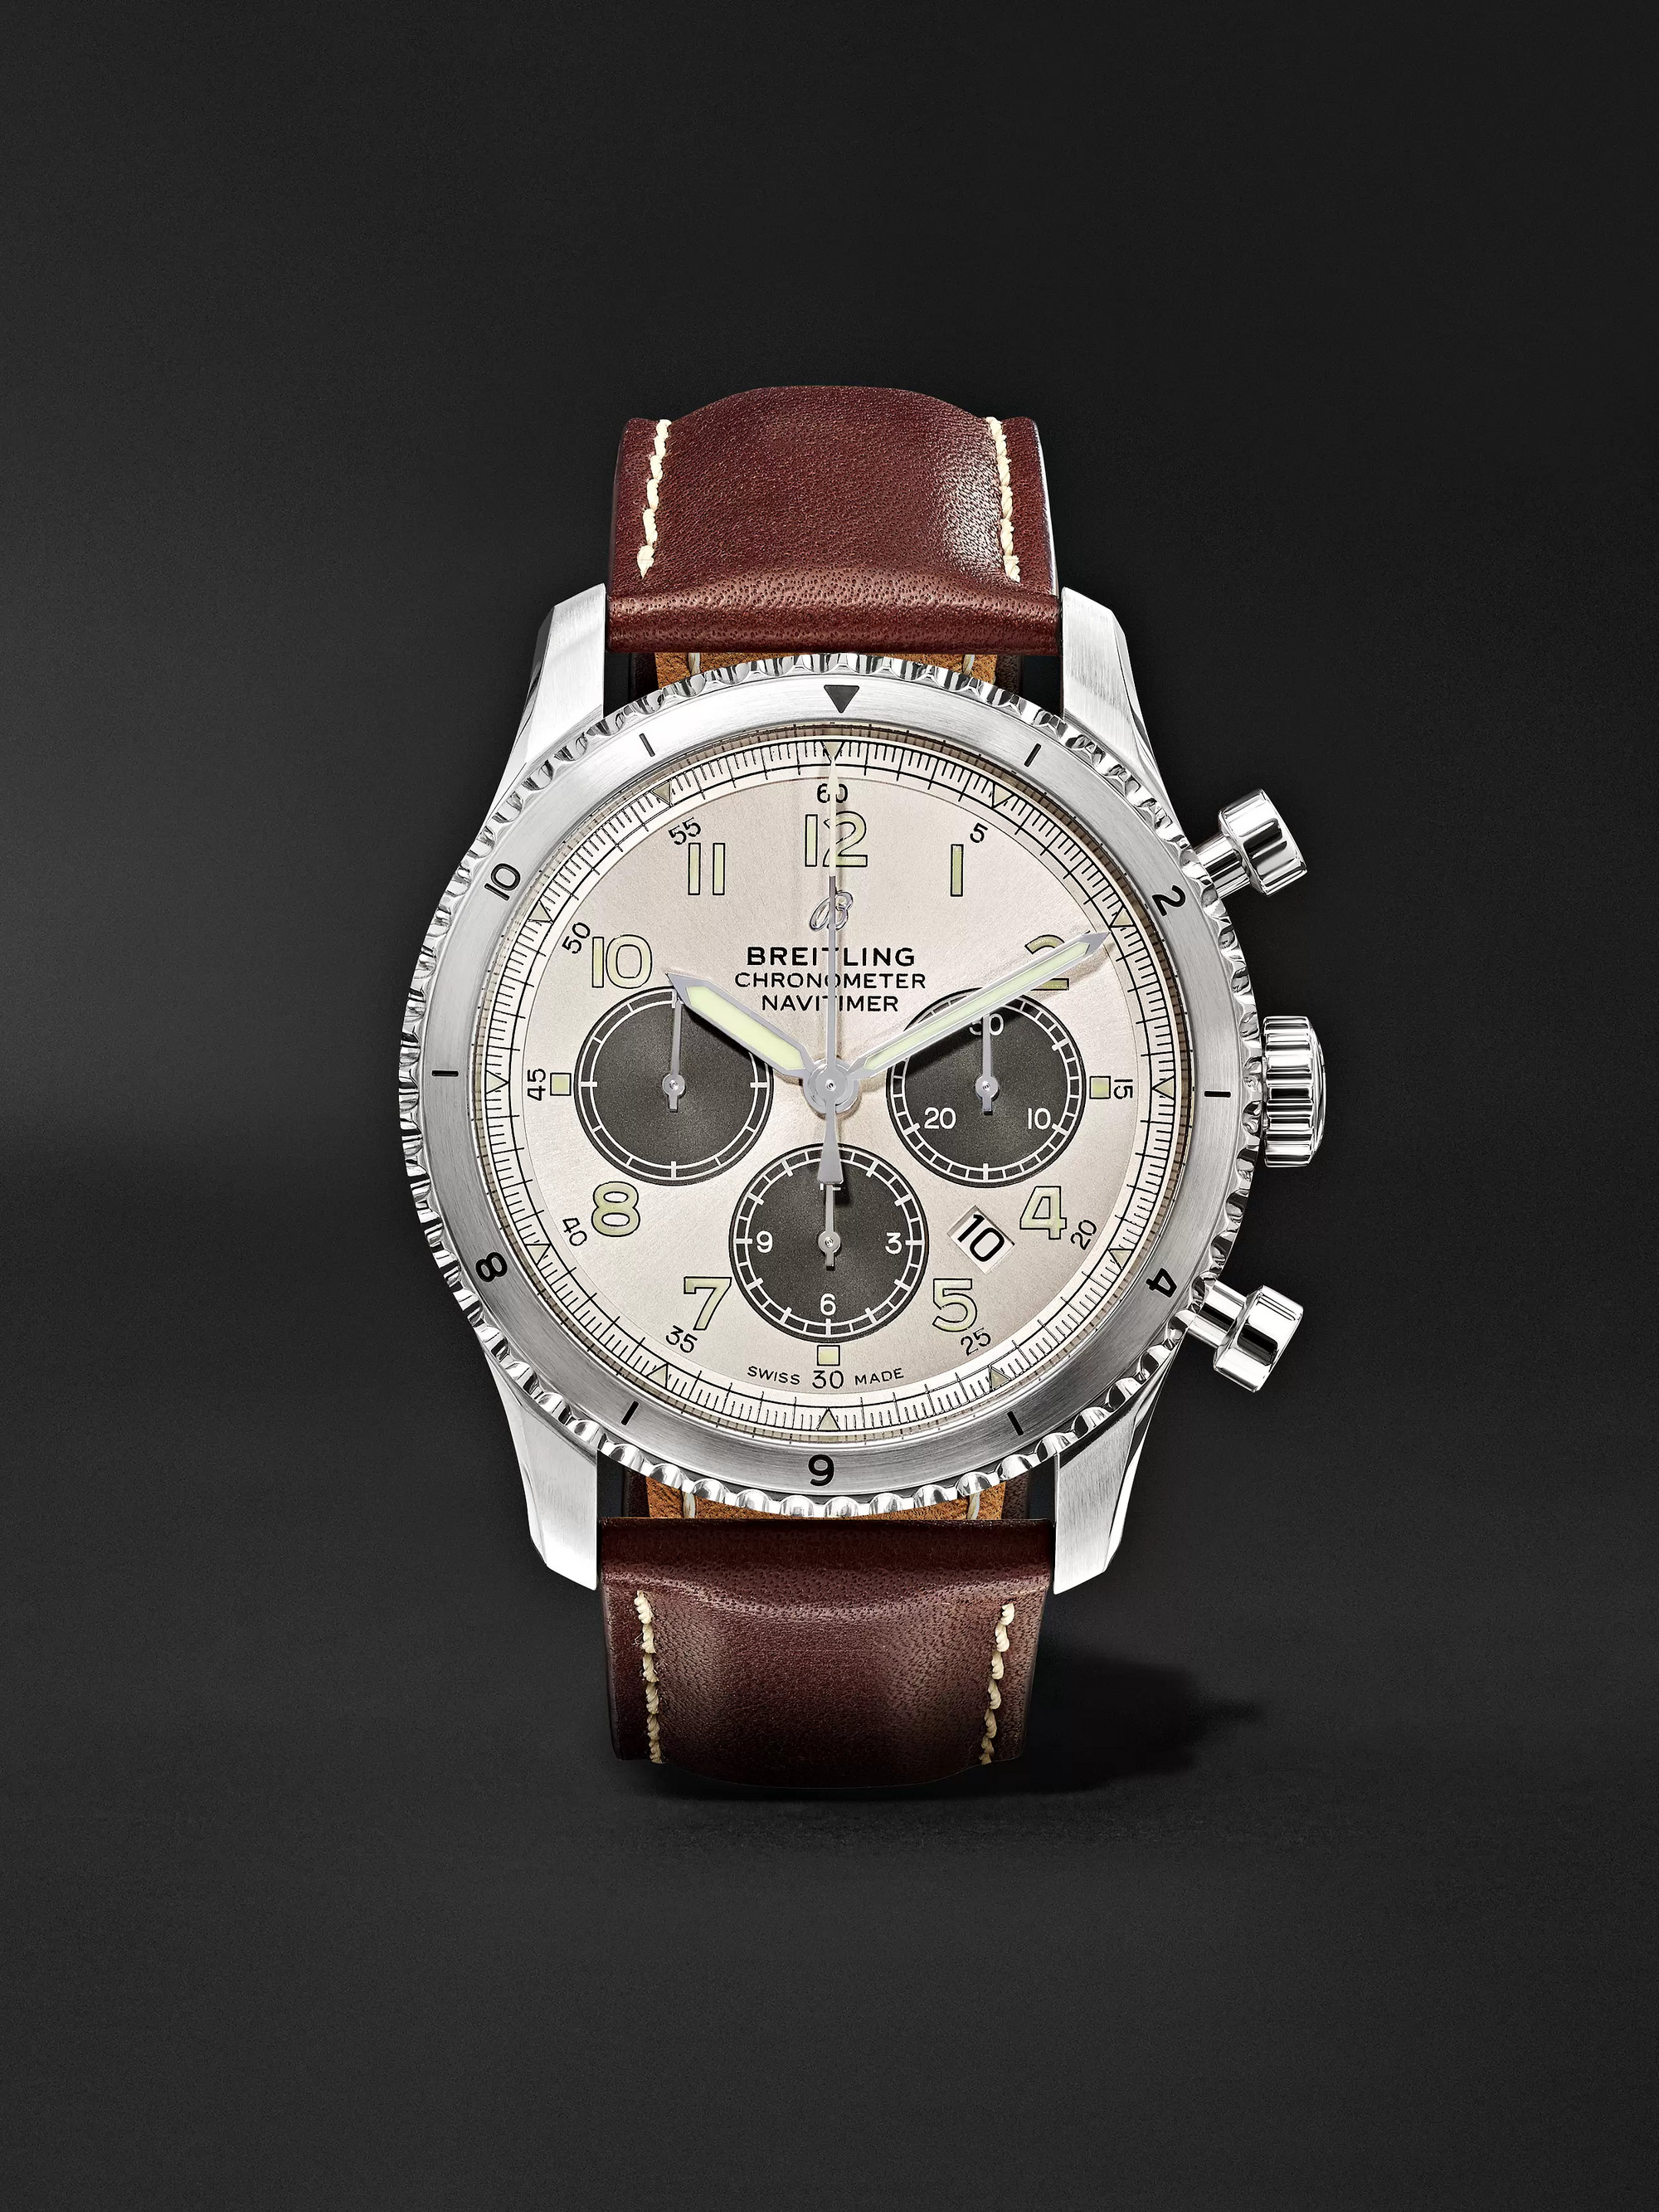 Breitling Navitimer 8 B01 Chronograph 43mm Stainless Steel and Leather Watch